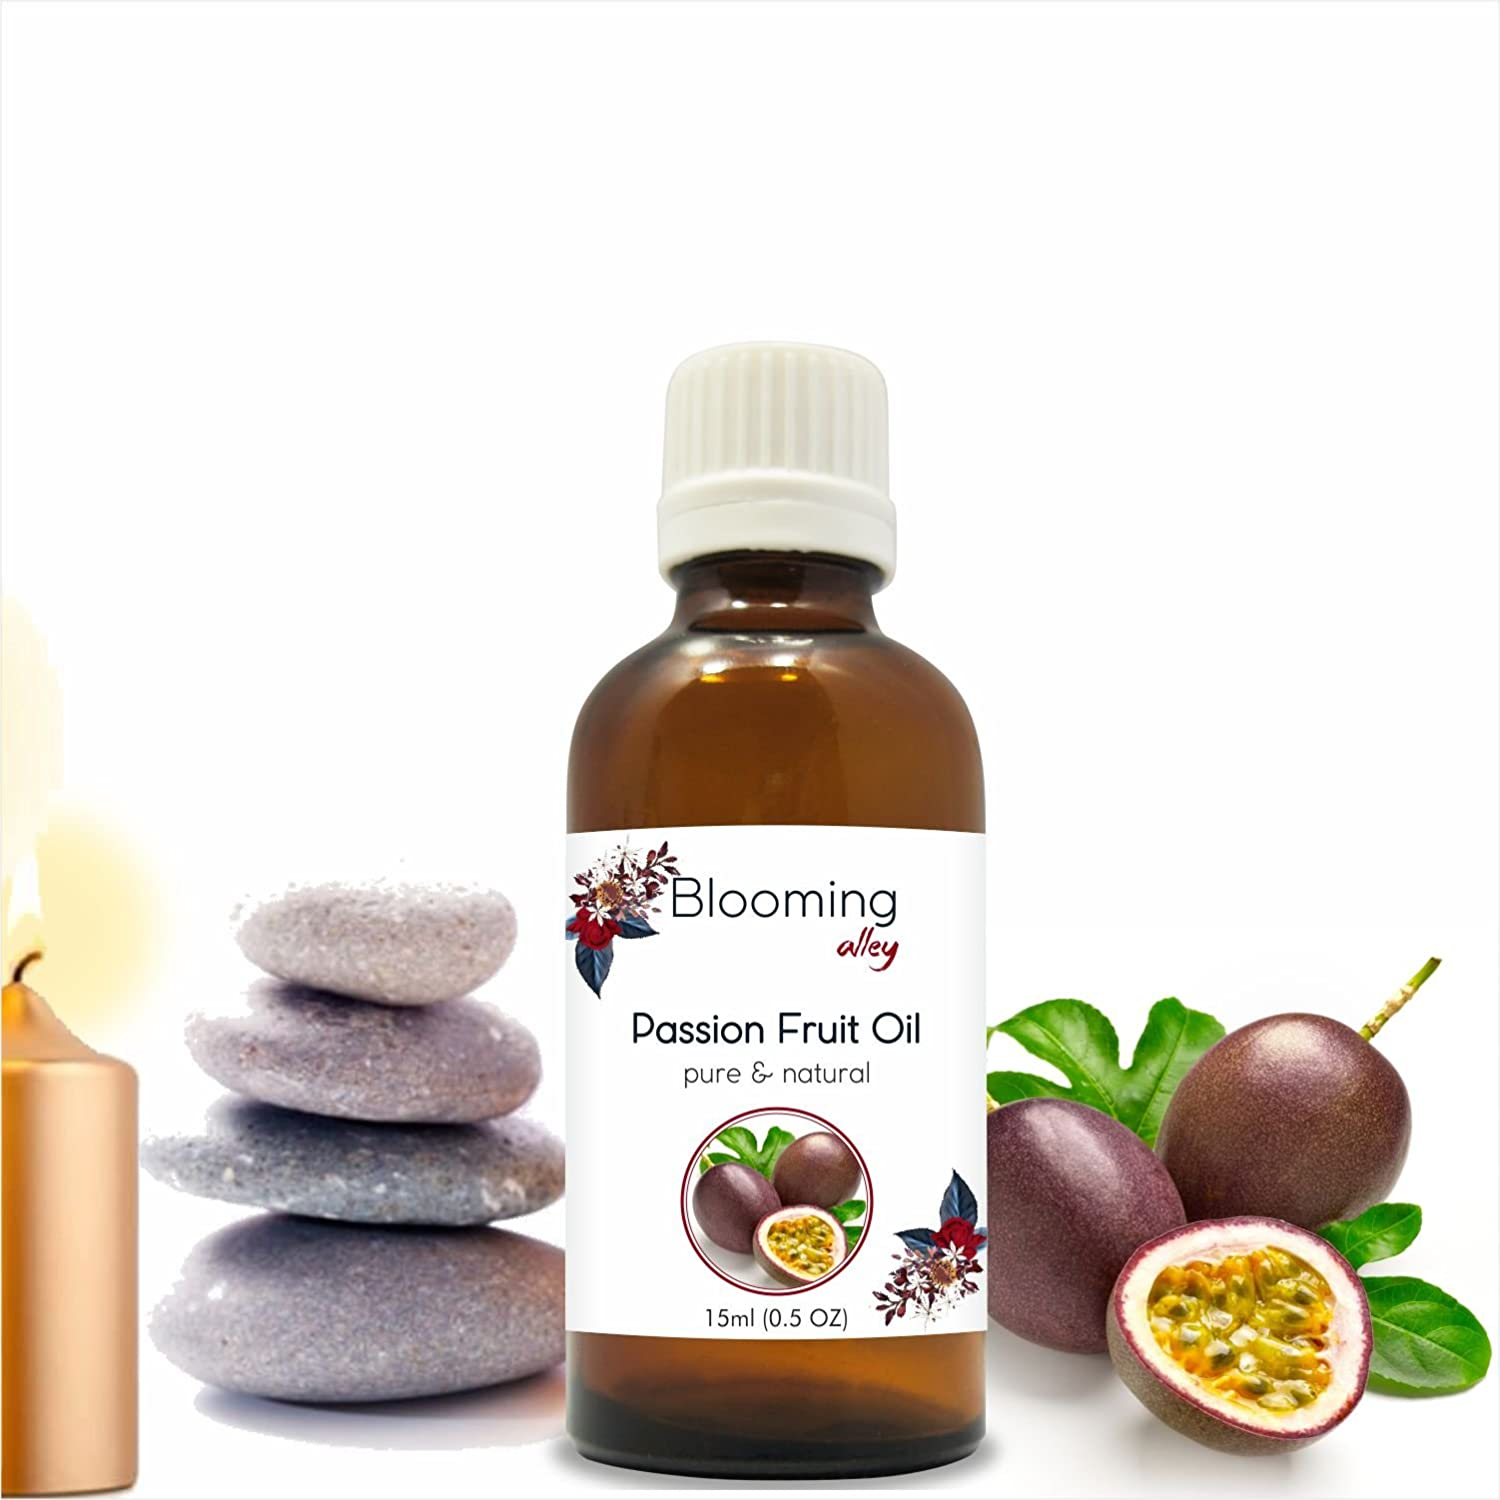 PASSION FRUIT OIL (Maracuja) Carrier Oil By Blooming Alley (15 ml) Salvia Pharmaceuticals